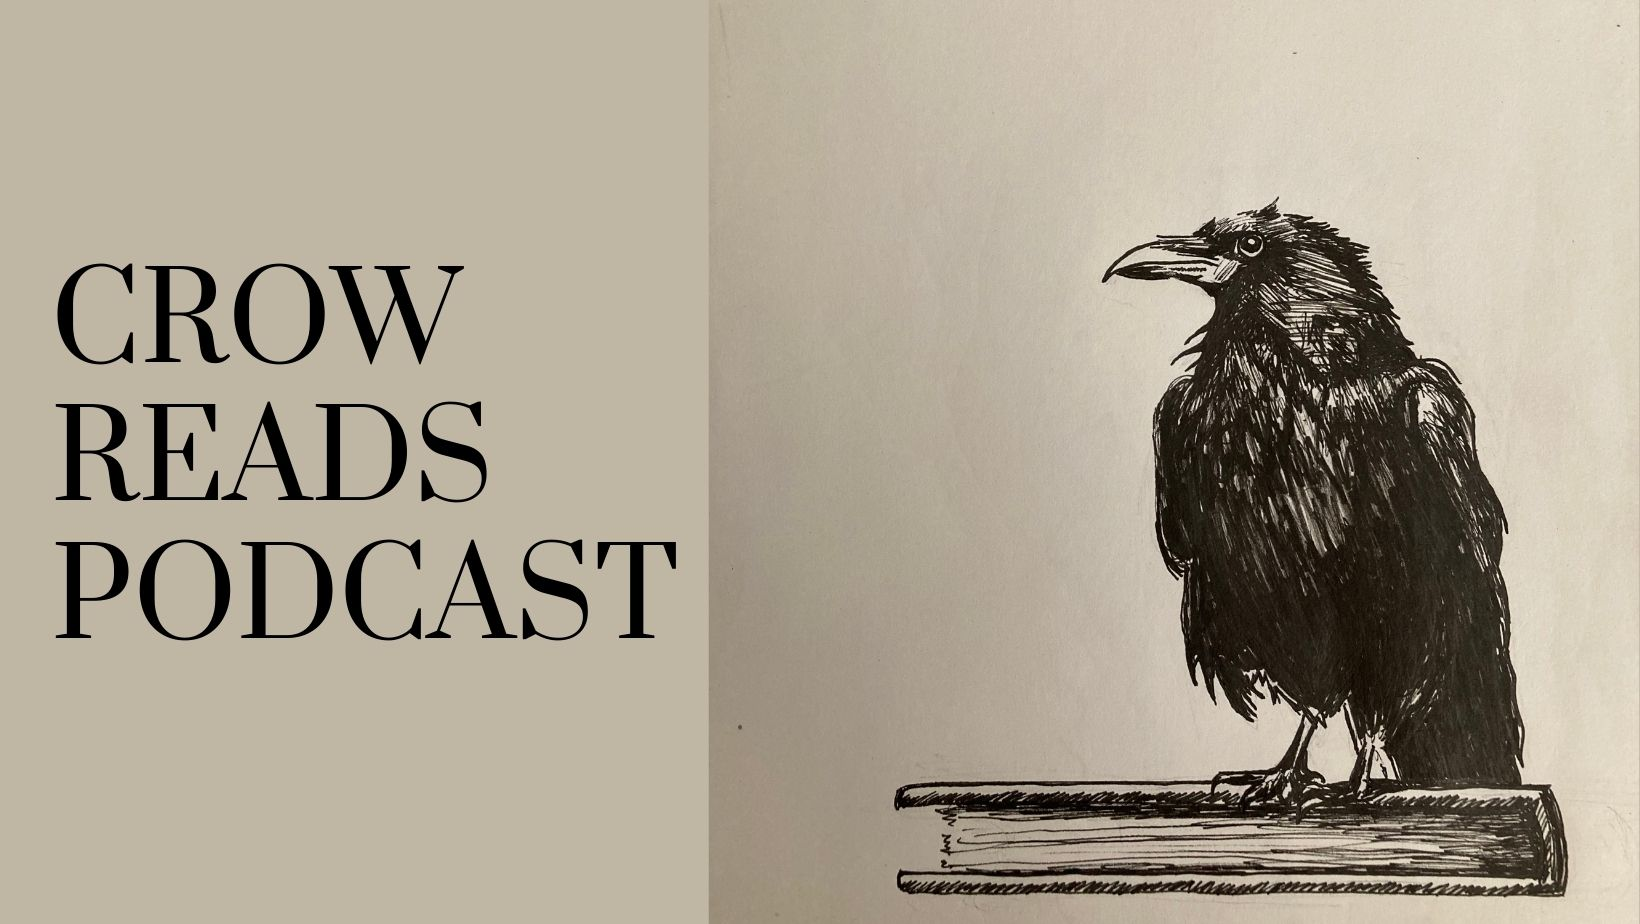 Crow Reads Podcast (inked illustration of a crow standing on a book)